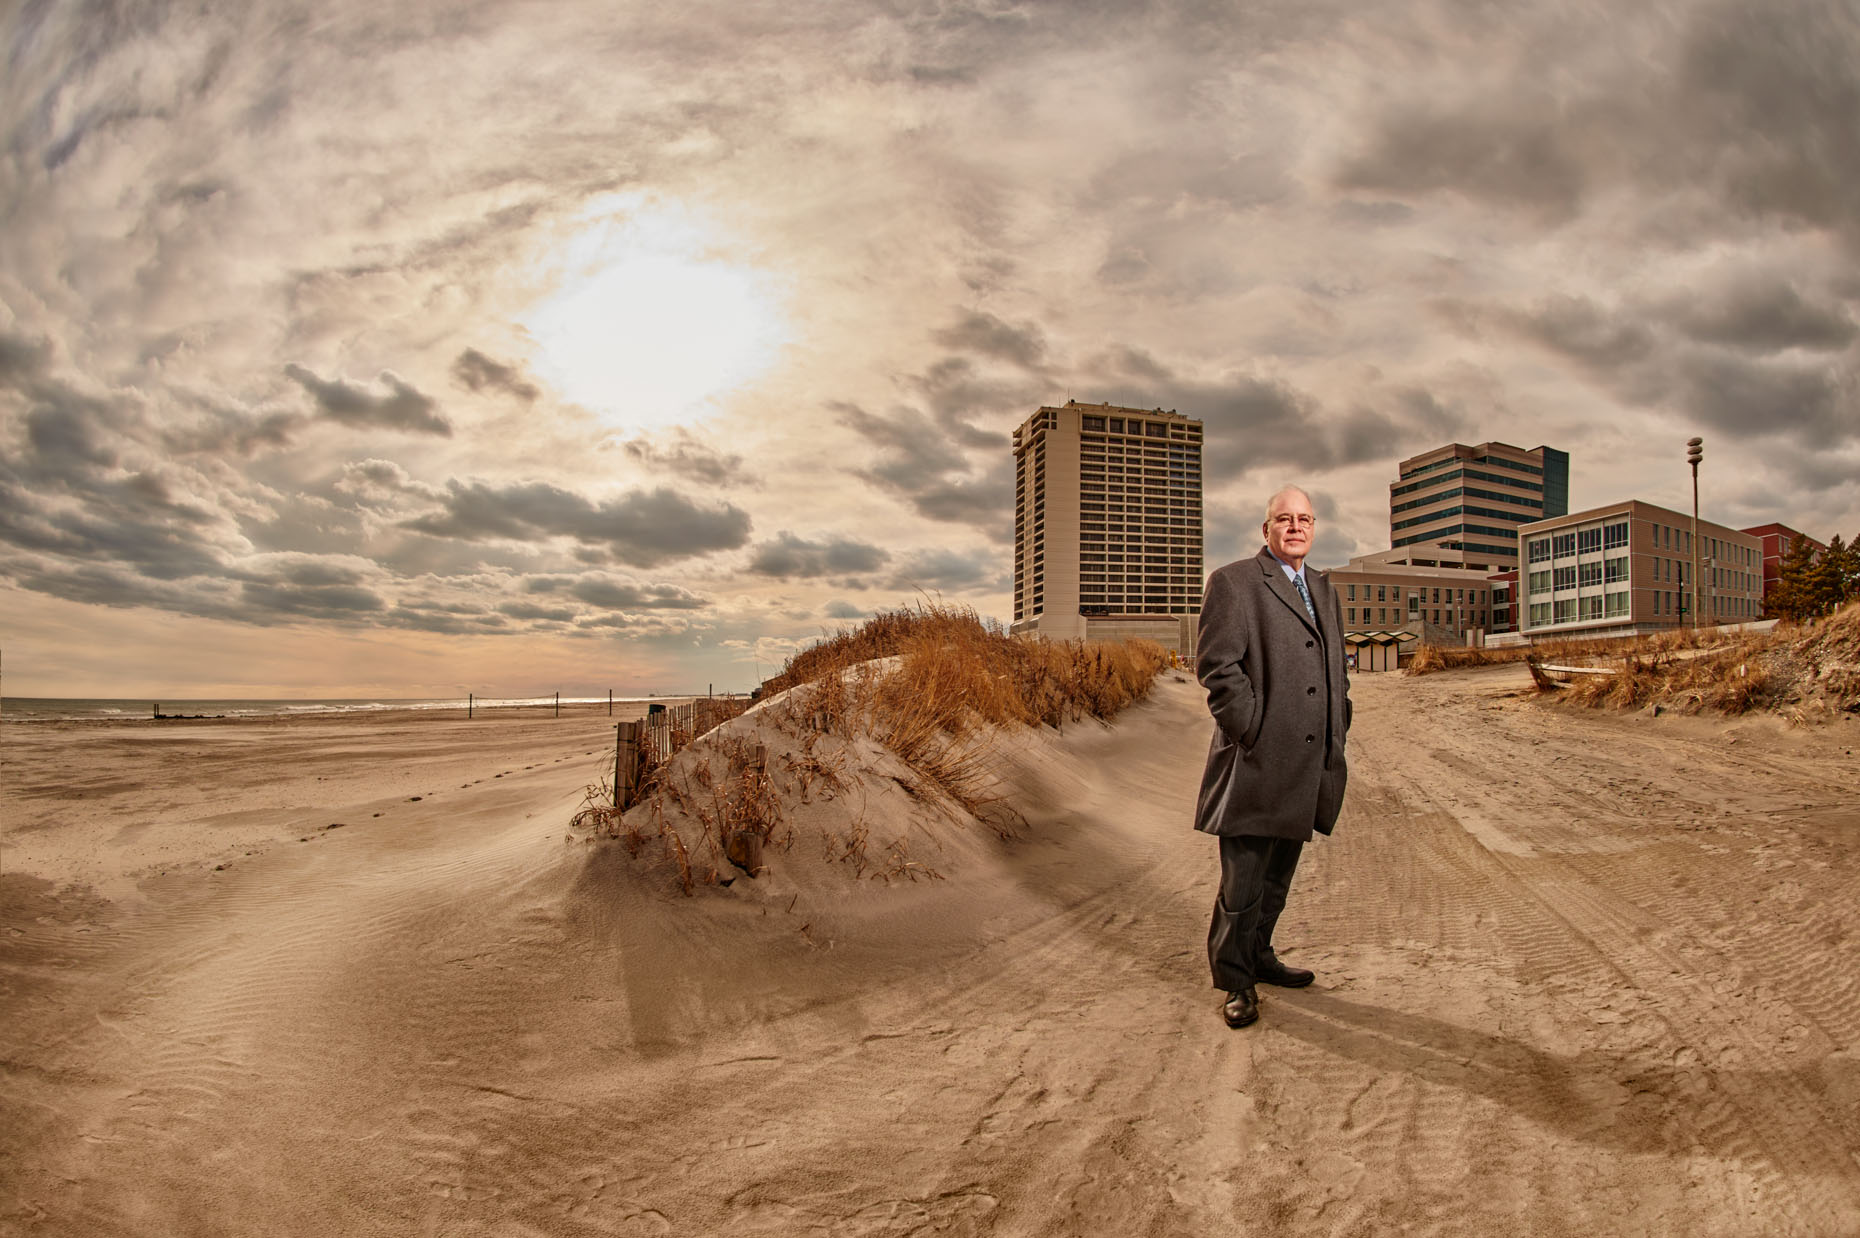 elderly-man-suit-beach-storm